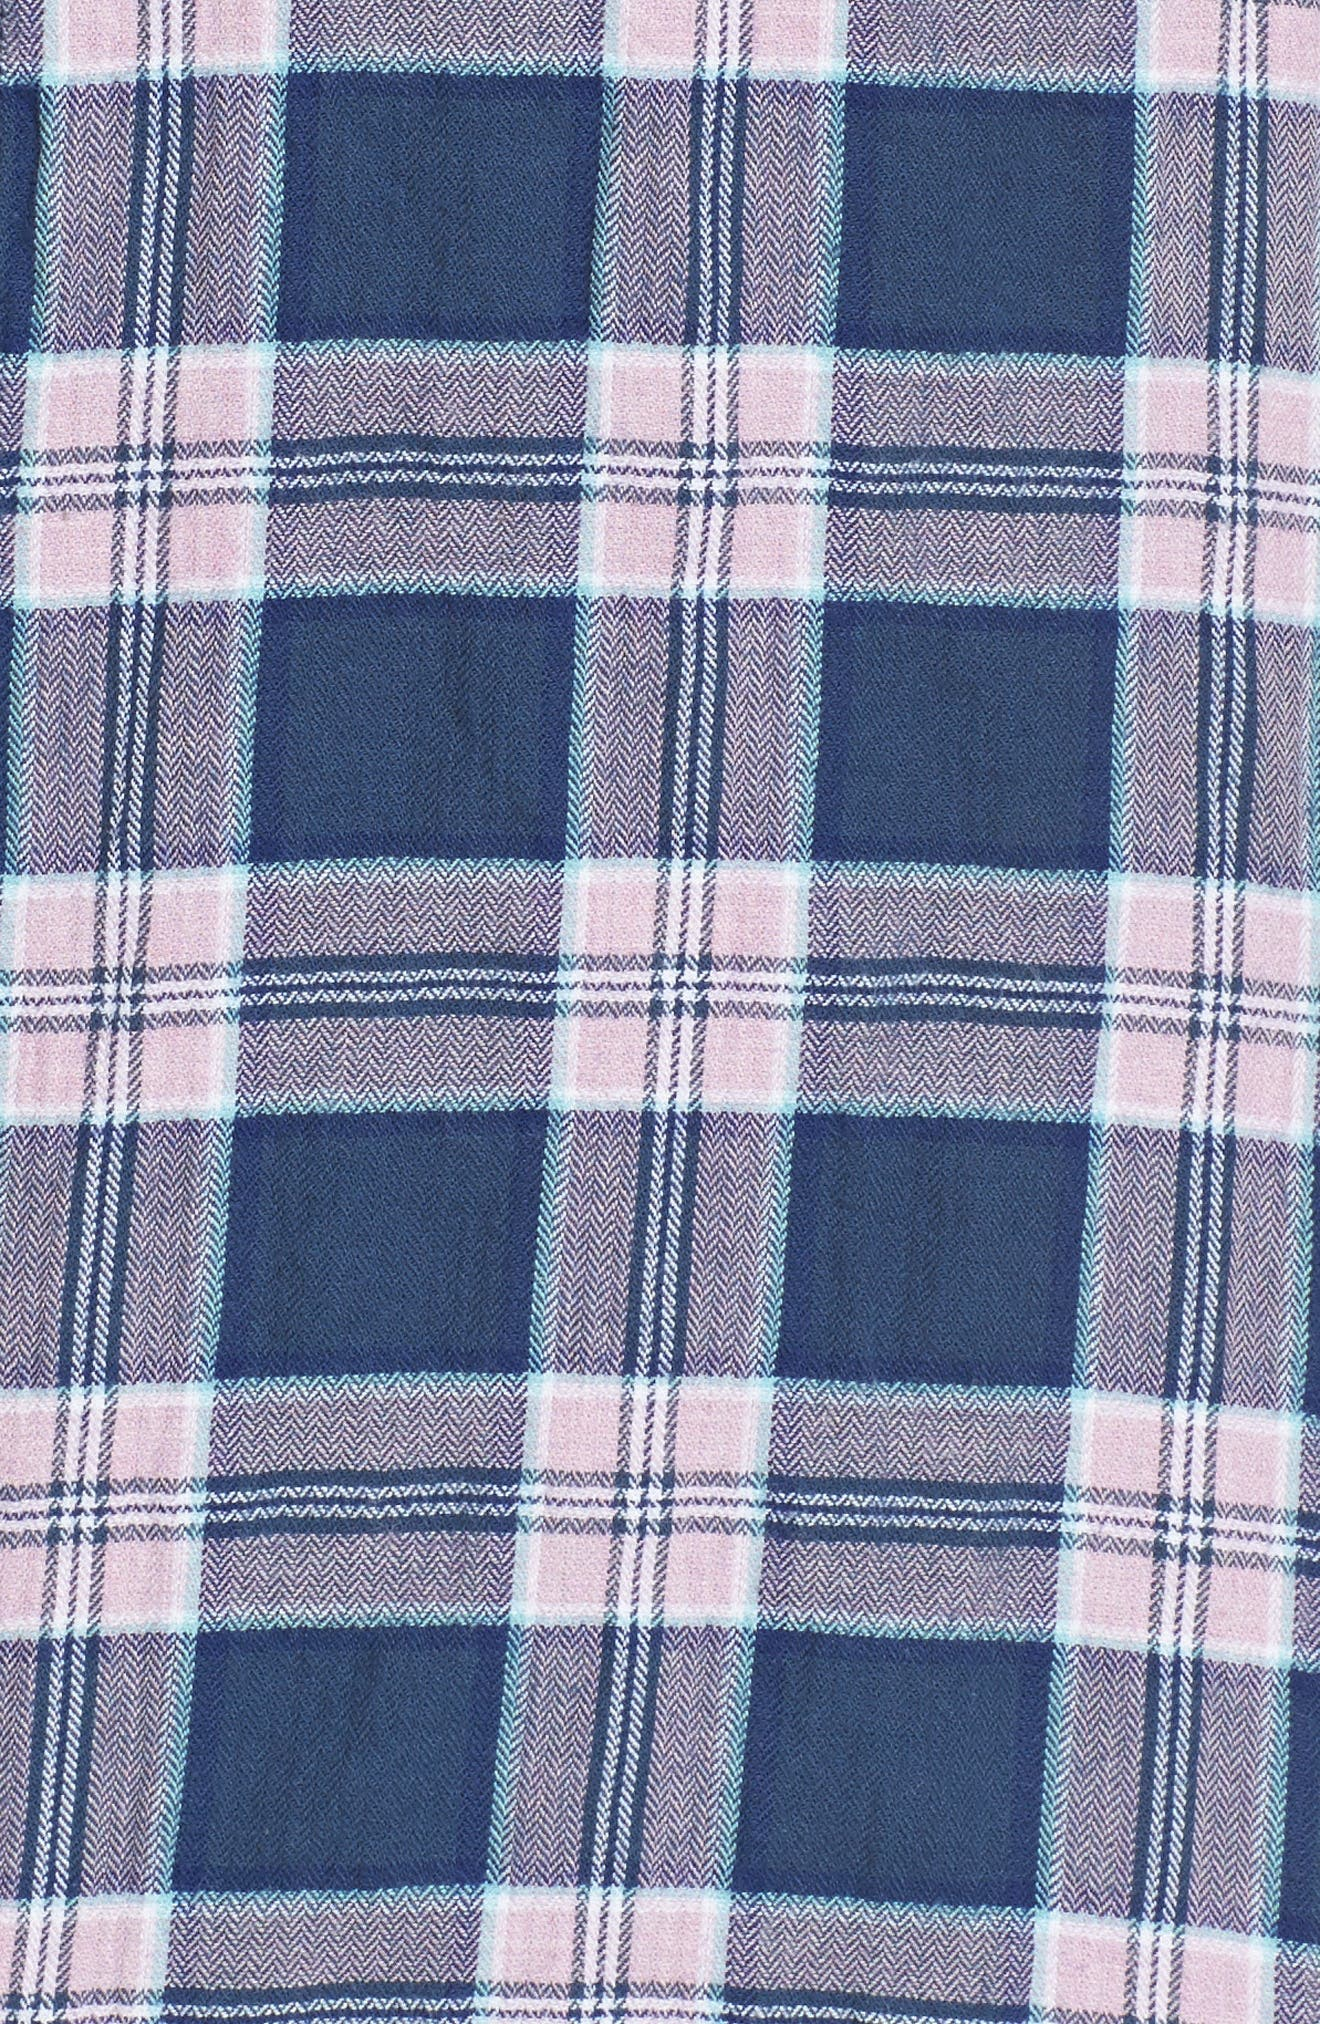 Riviera Slim Fit Plaid Woven Shirt,                             Alternate thumbnail 5, color,                             Crinkle Blue Pine Plaid